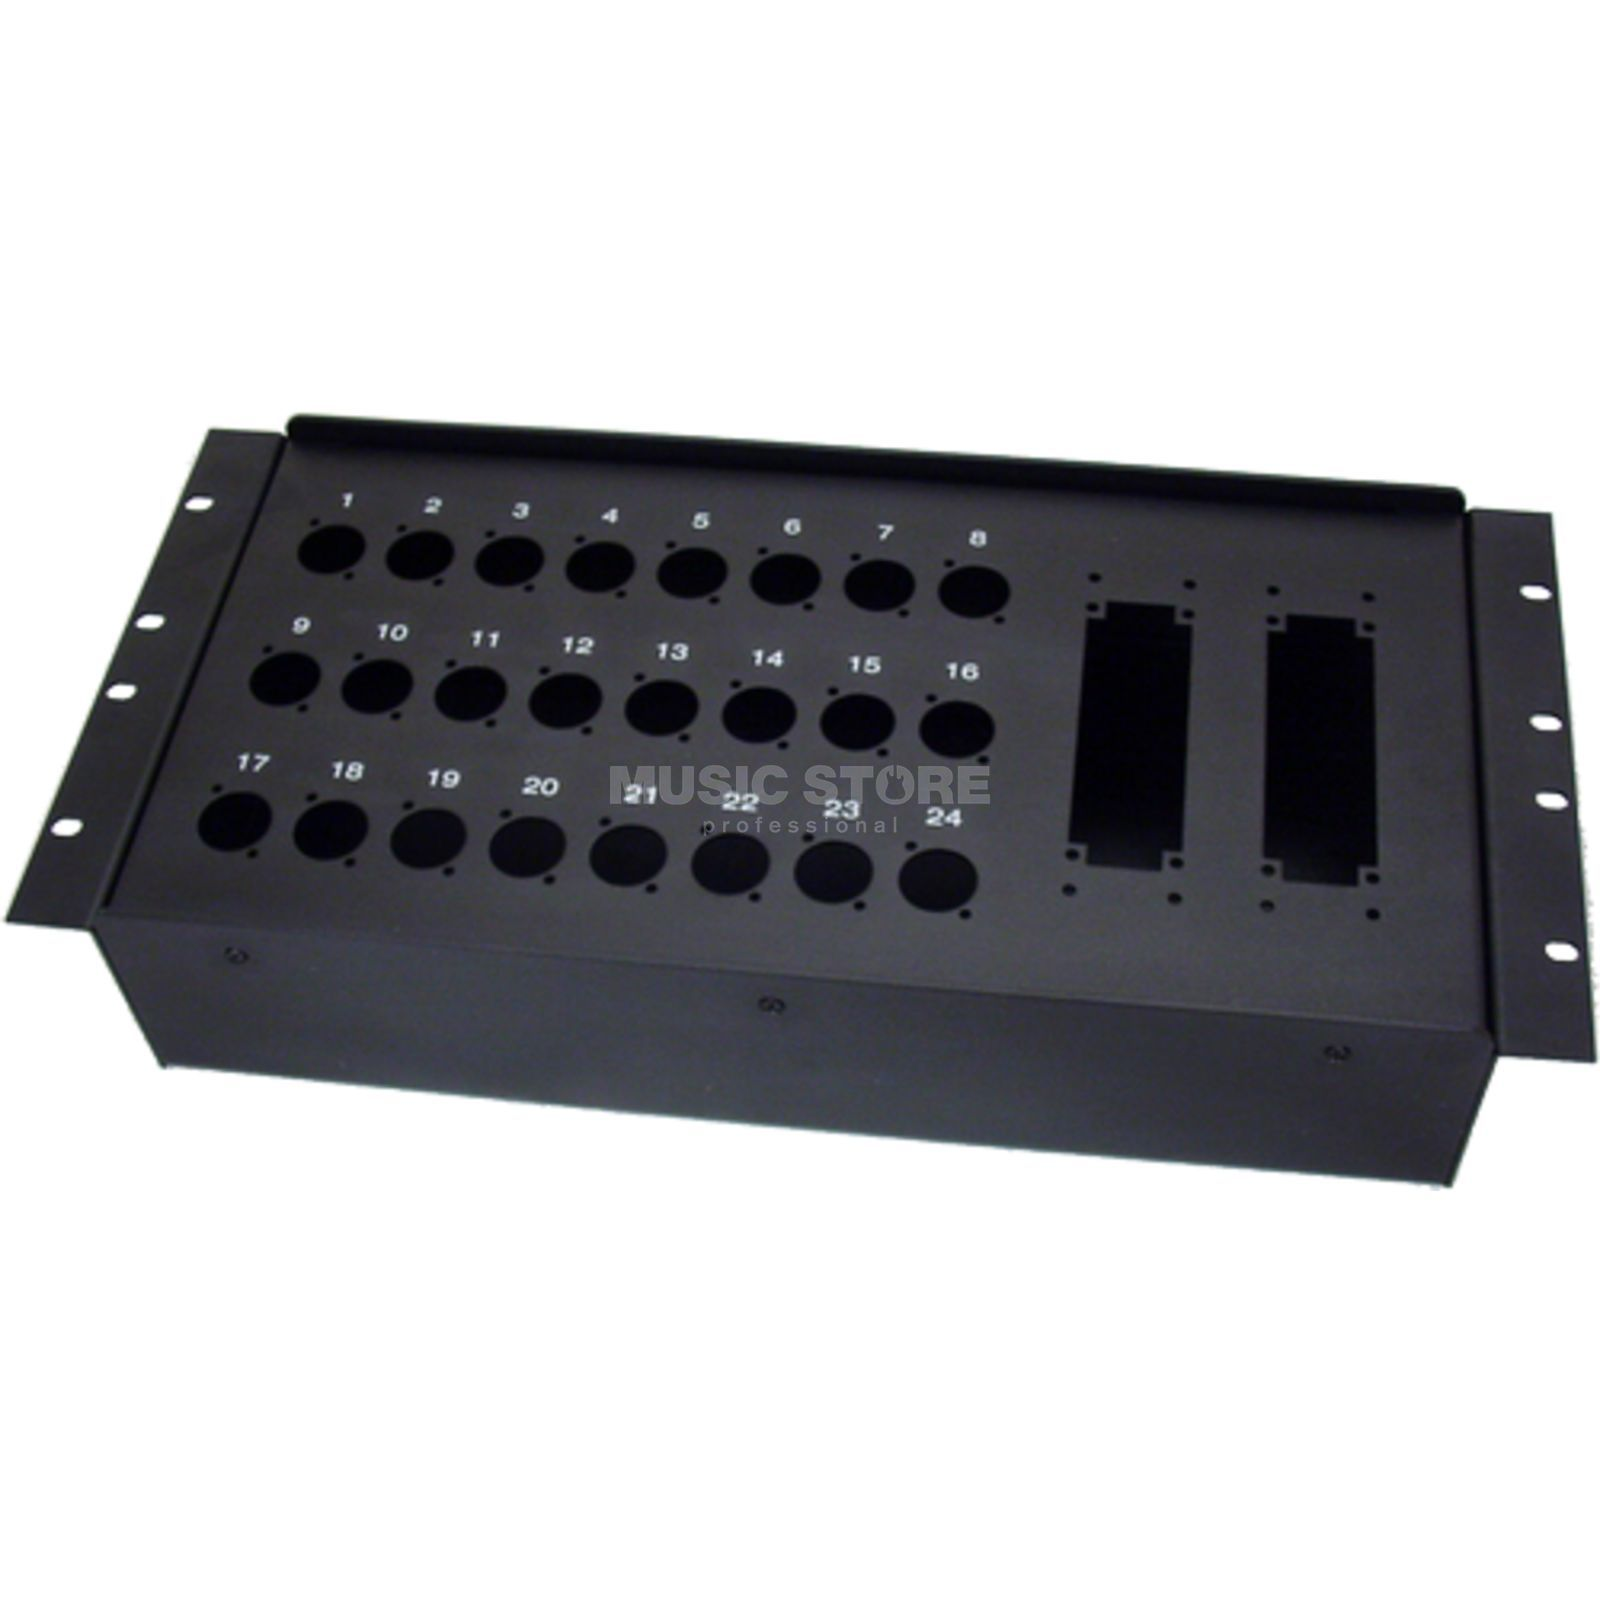 "MUSIC STORE Stagebox - 19"" 24 / 24-Holes for Rack install, D-Series   Produktbillede"